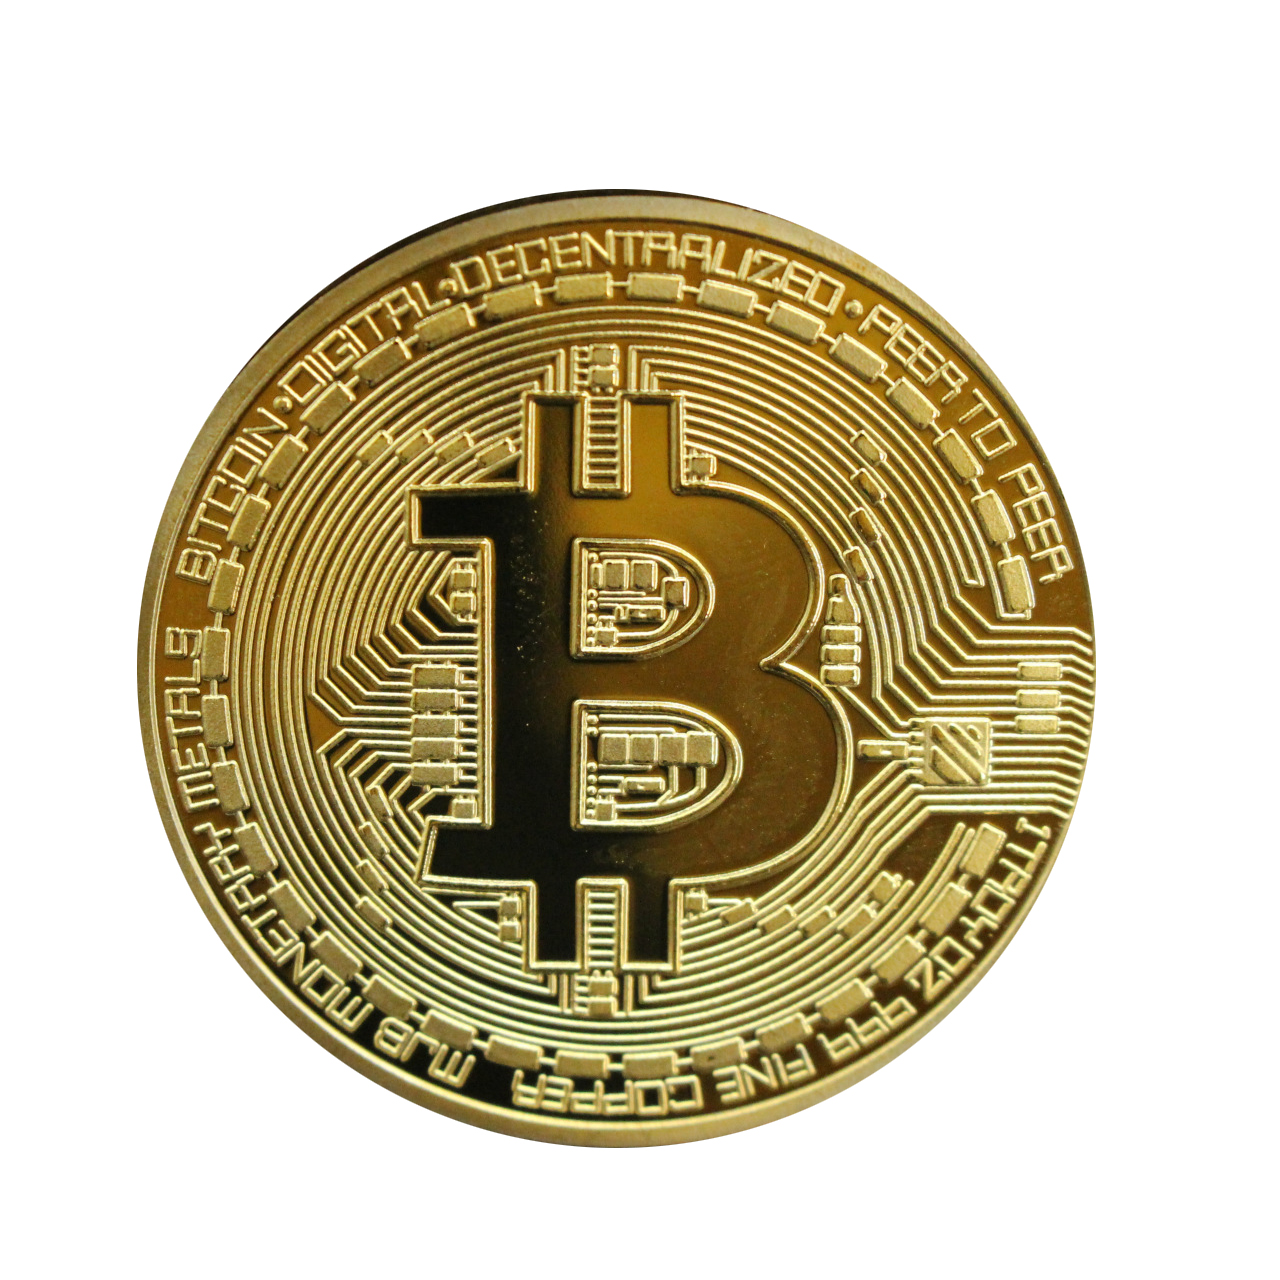 1 Pcs Gold Plated Bitcoin Coin Collectible Gift Casascius Bit Coin BTC Coin Art Collection Physical Commemorative Coin TSLM1